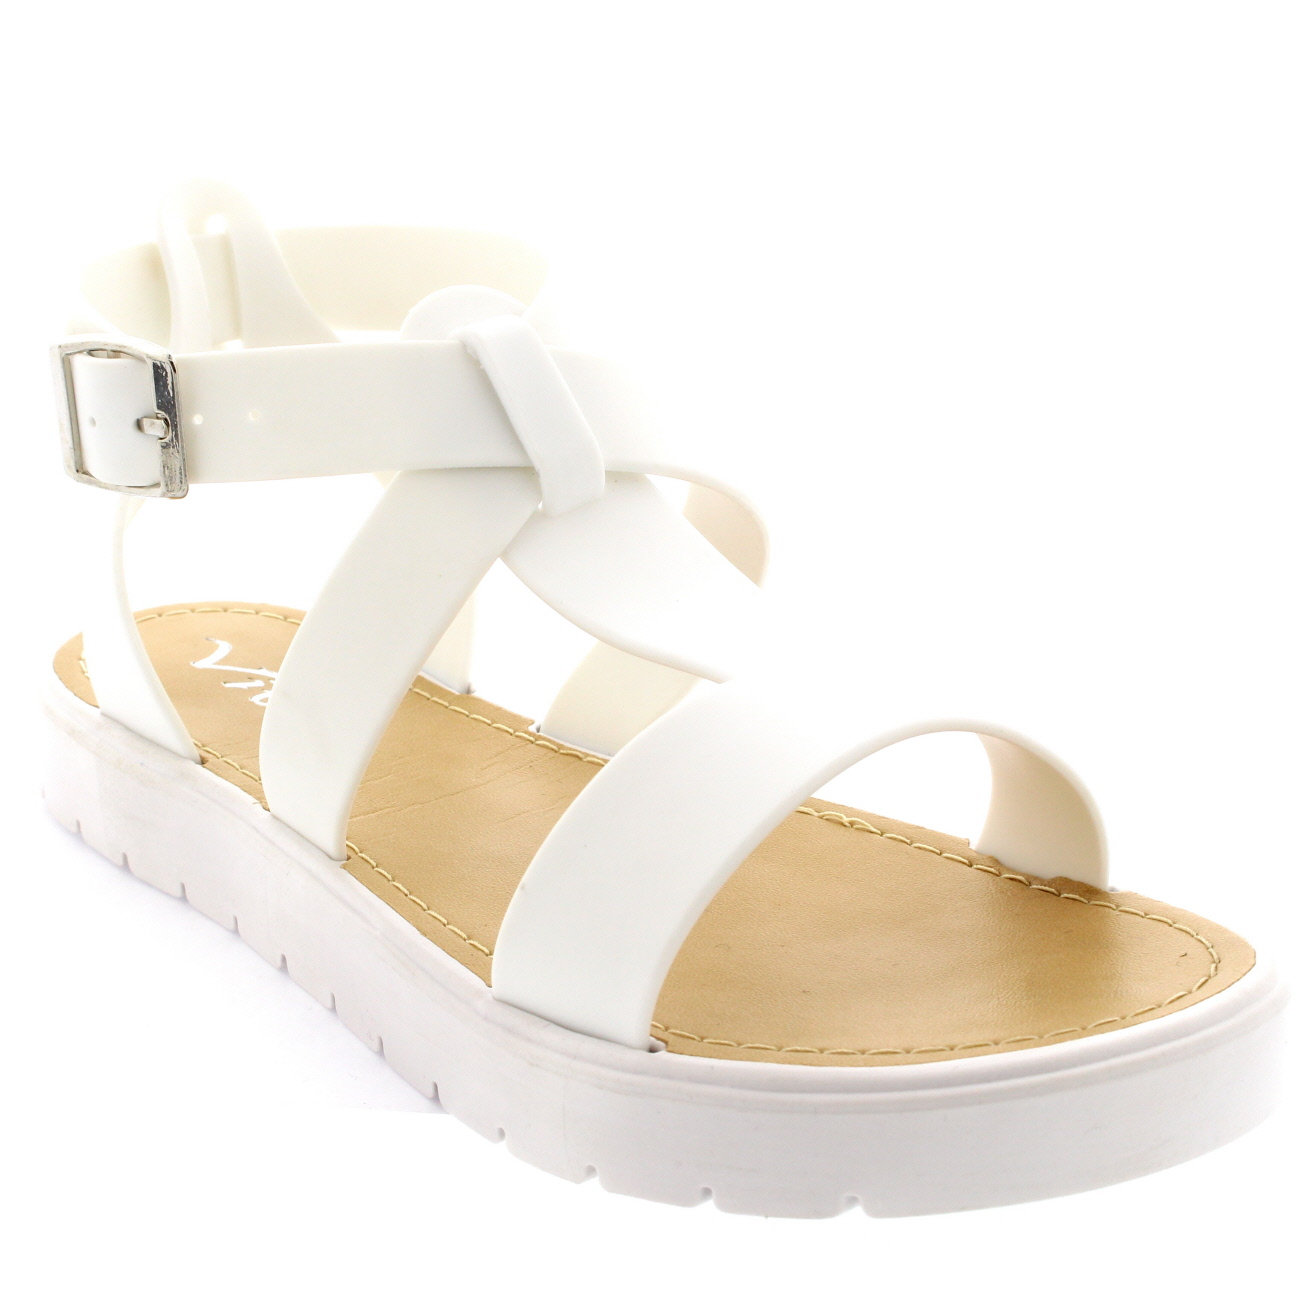 Womens Shoes T-Strap Cleated Sole Open Toe White Flatform Jelly ... 10e9a4026